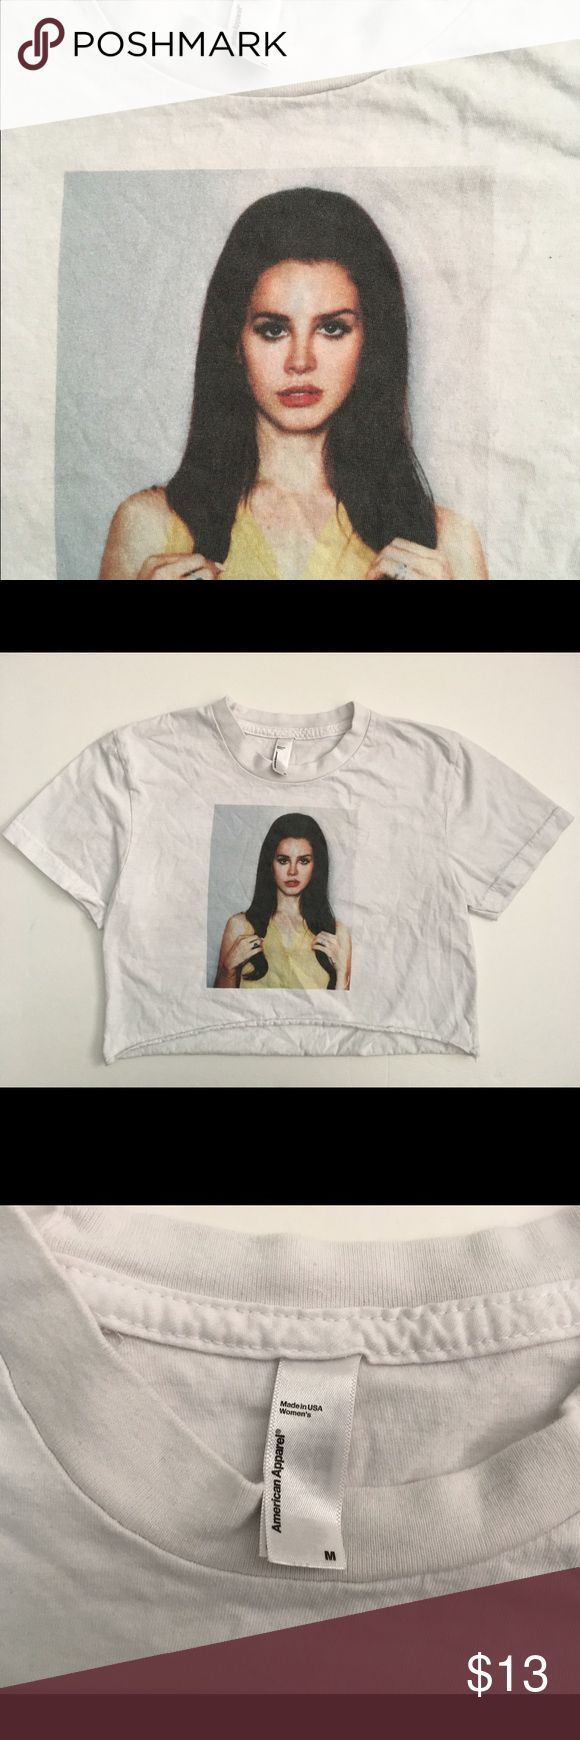 American Apparel Lana Del Rey crop cut off Tee M American Apparel cut off crop T-shirt featuring Lana Del Rey. Size M. American Apparel Tops Tees - Short Sleeve